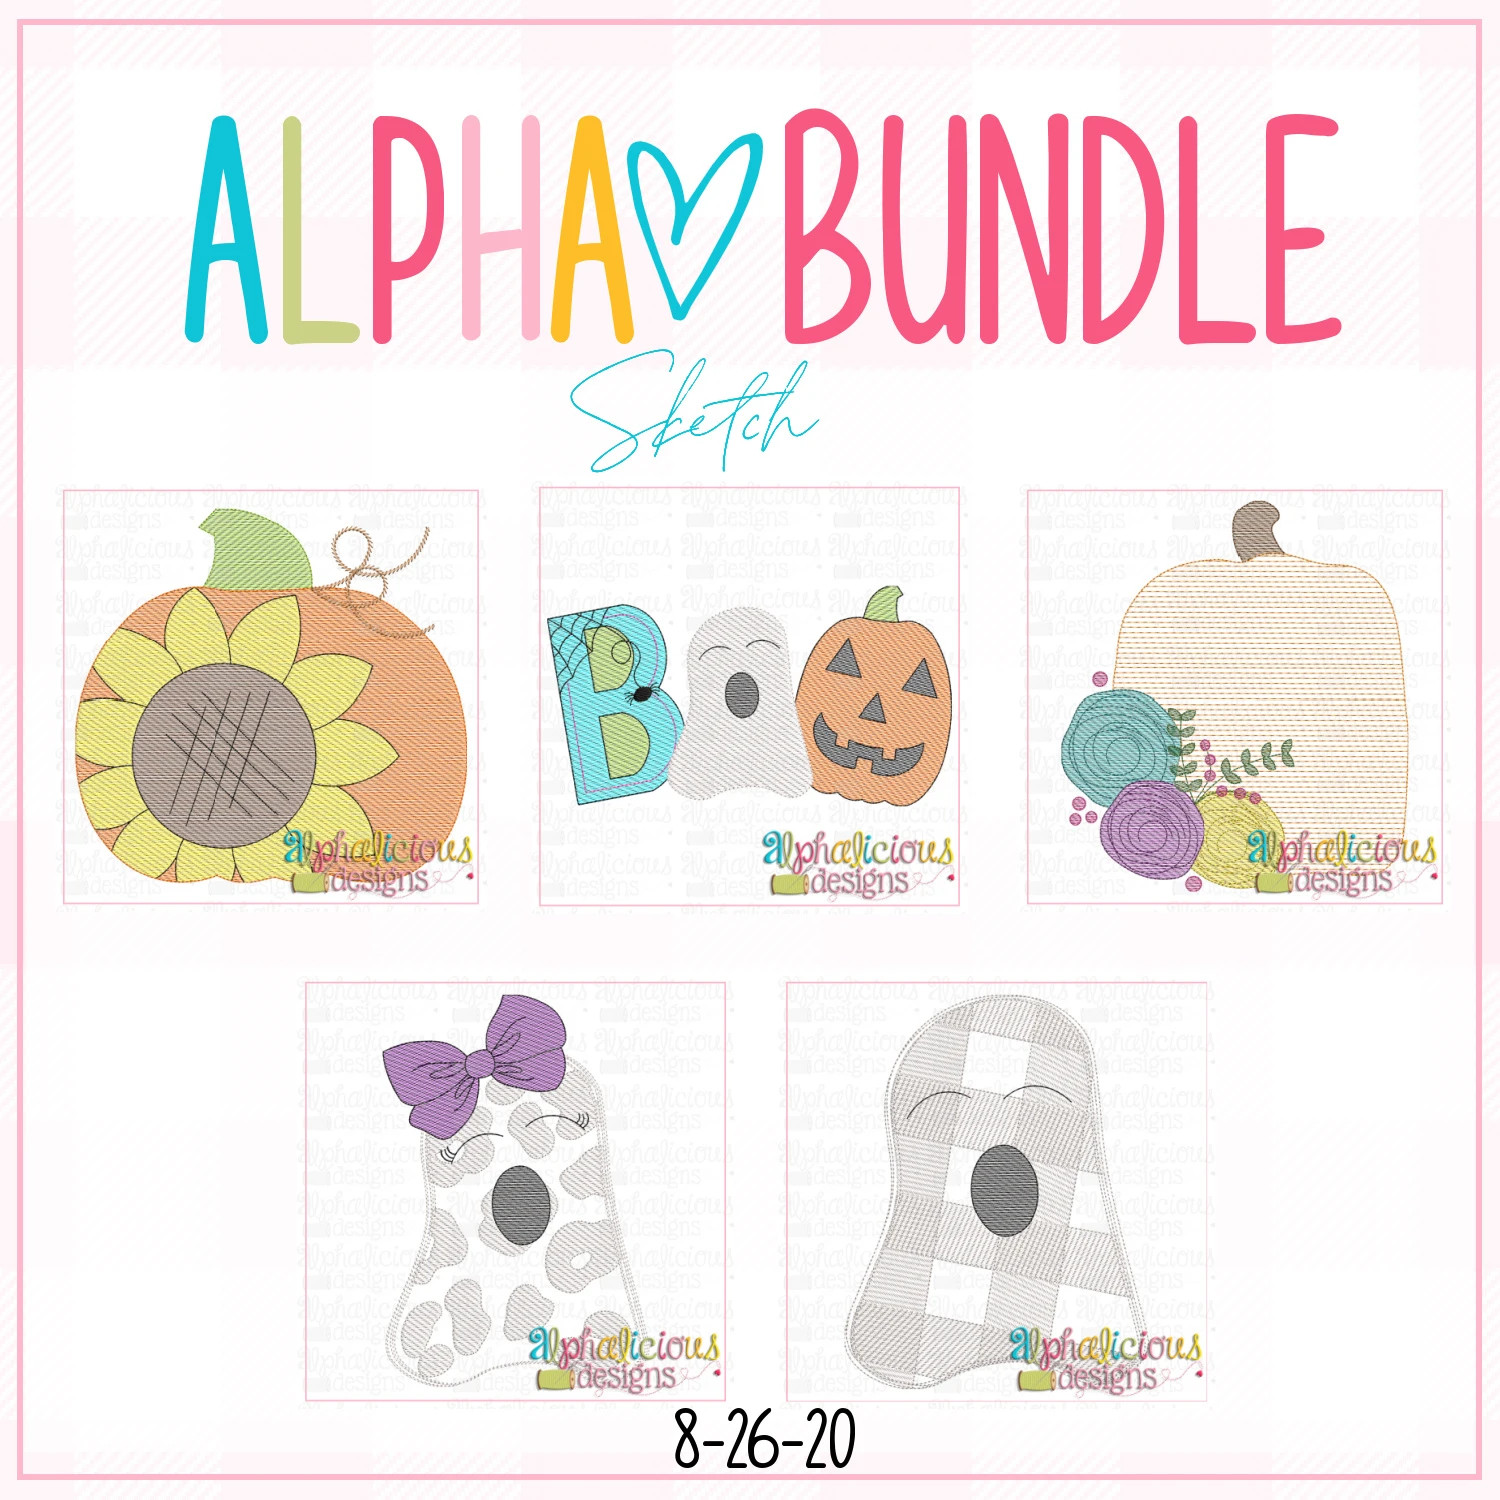 ALPHA BUNDLE-8/26/20 Release-Sketch